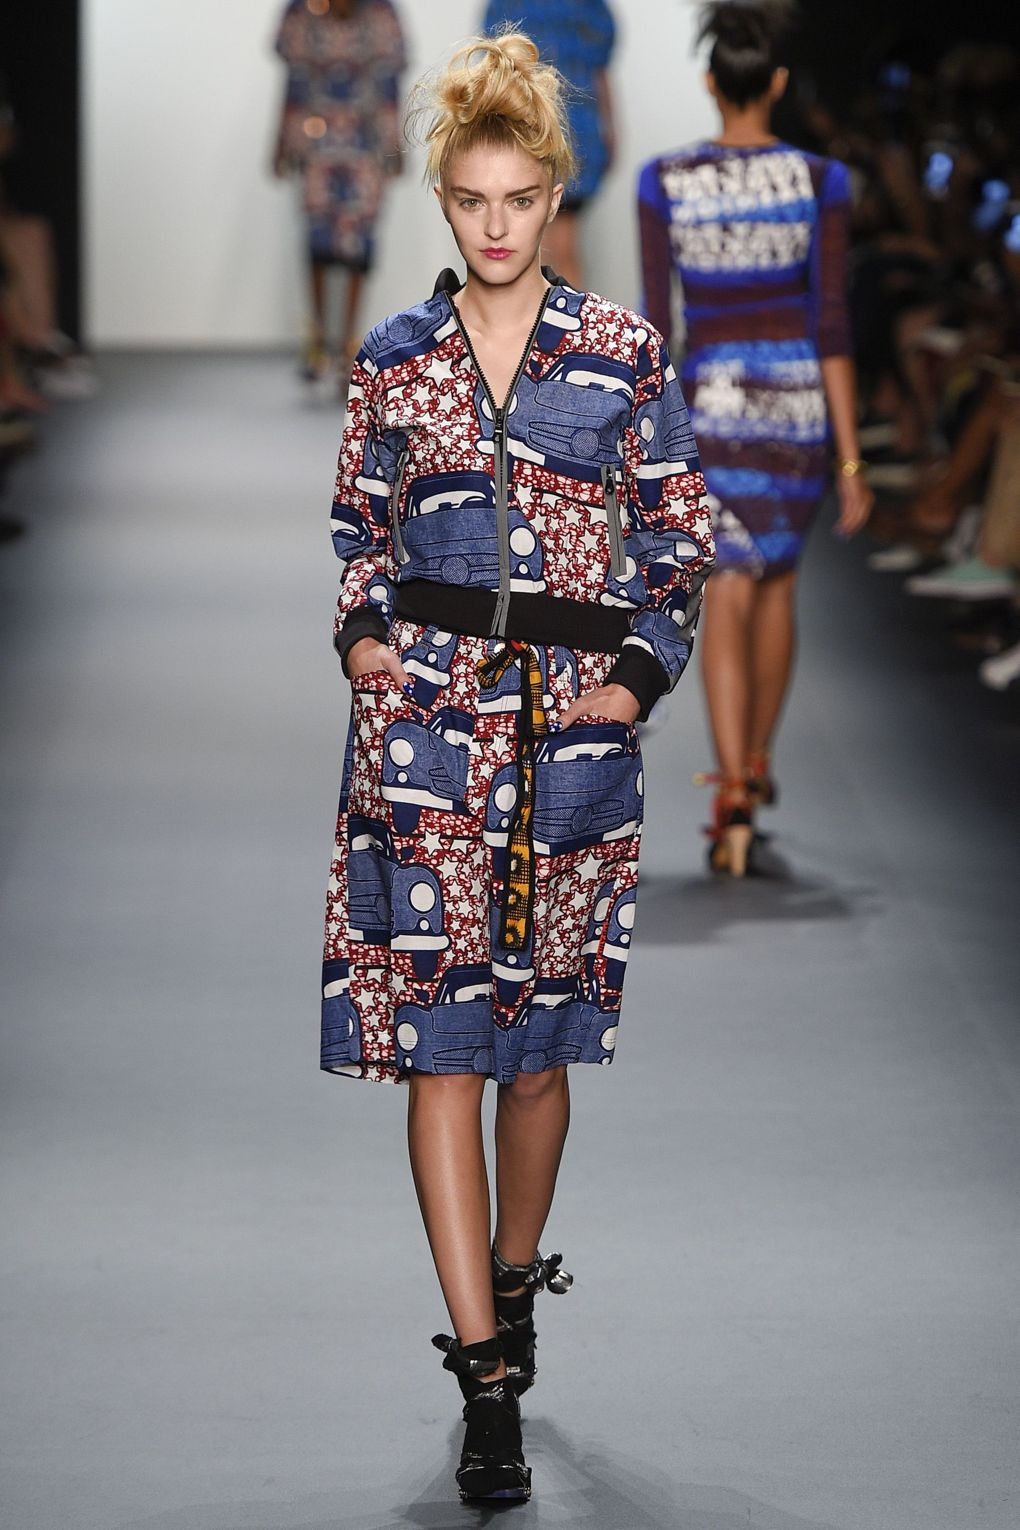 fashion-week-xuly-be%cc%88t-xuly-be%cc%88t-sprigsummer-2016-ready-to-wear-collection-16